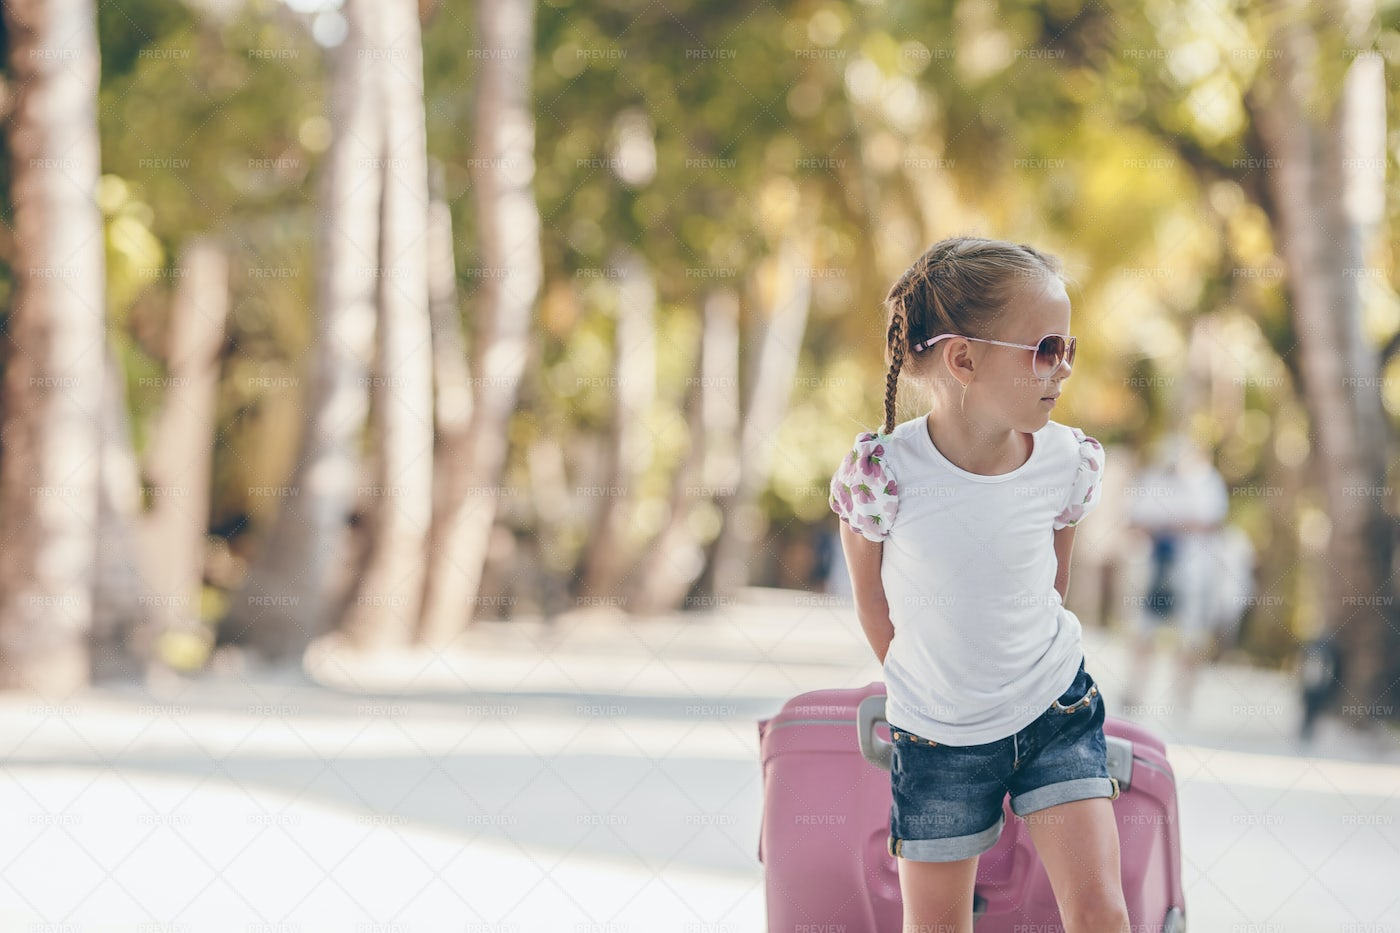 Kid Ready For A Vacation: Stock Photos